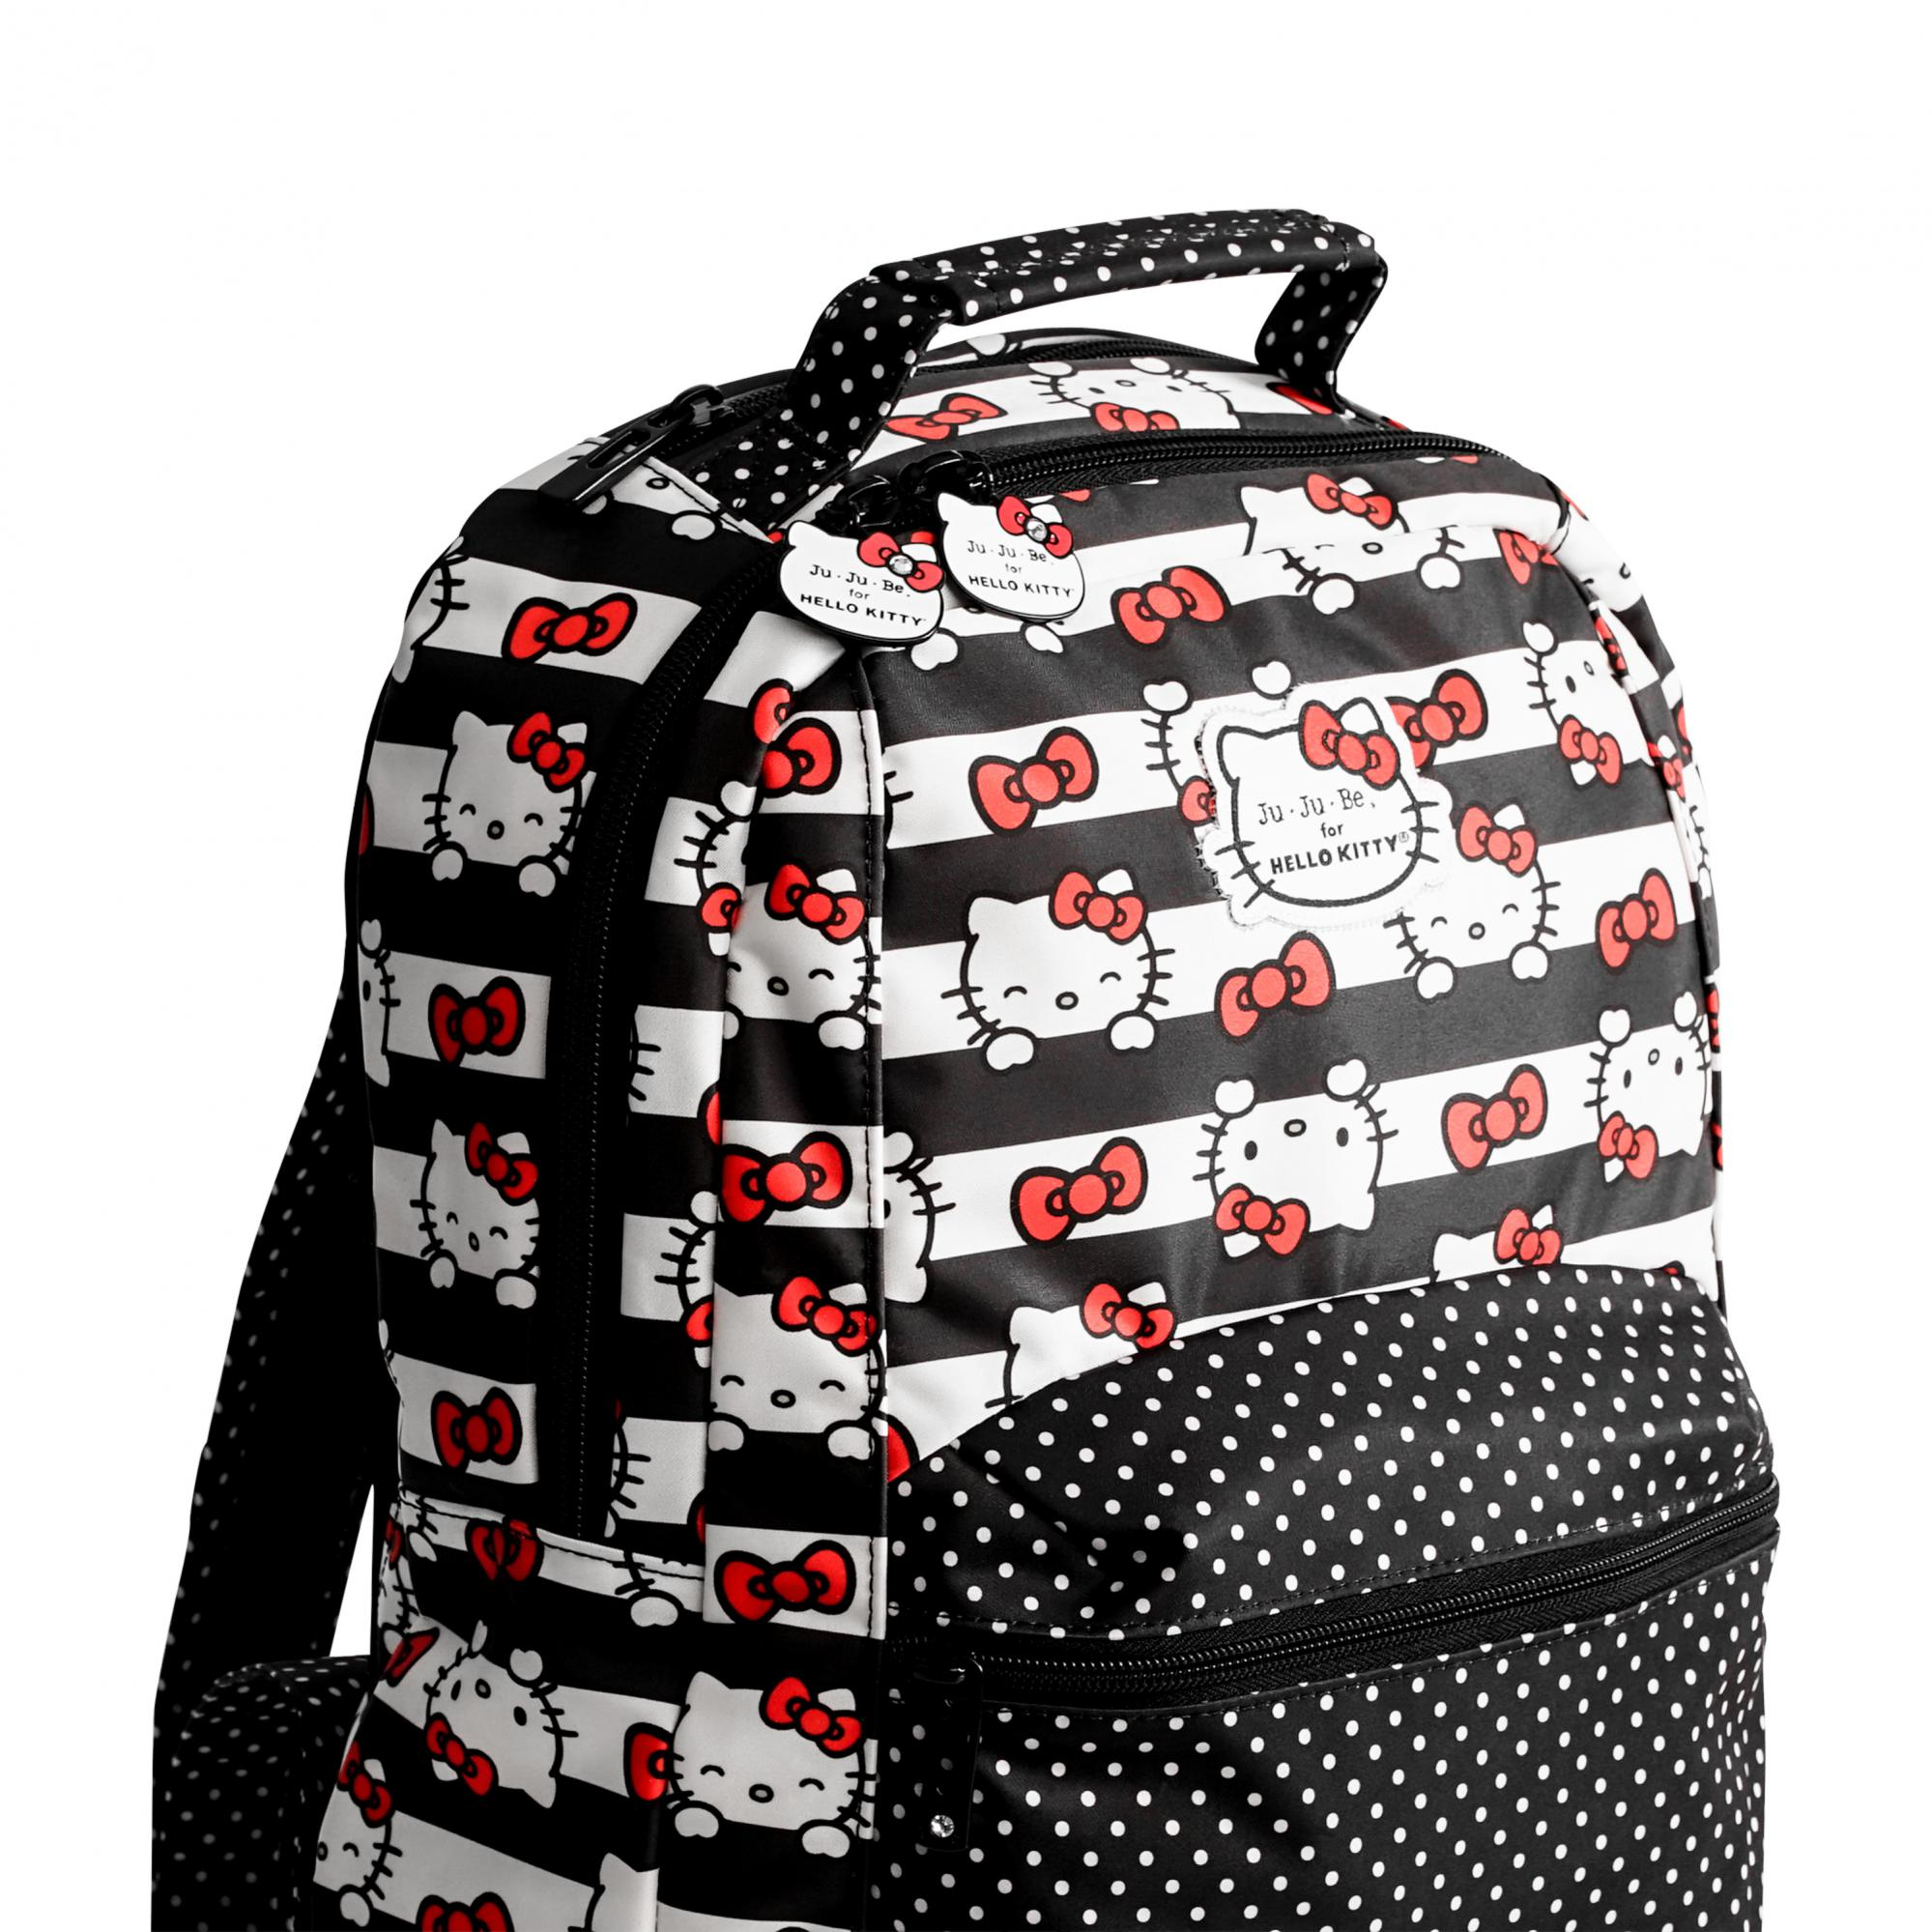 ju-ju-be-hello-kitty-dots-and-stripes-be-packed-3.JPG